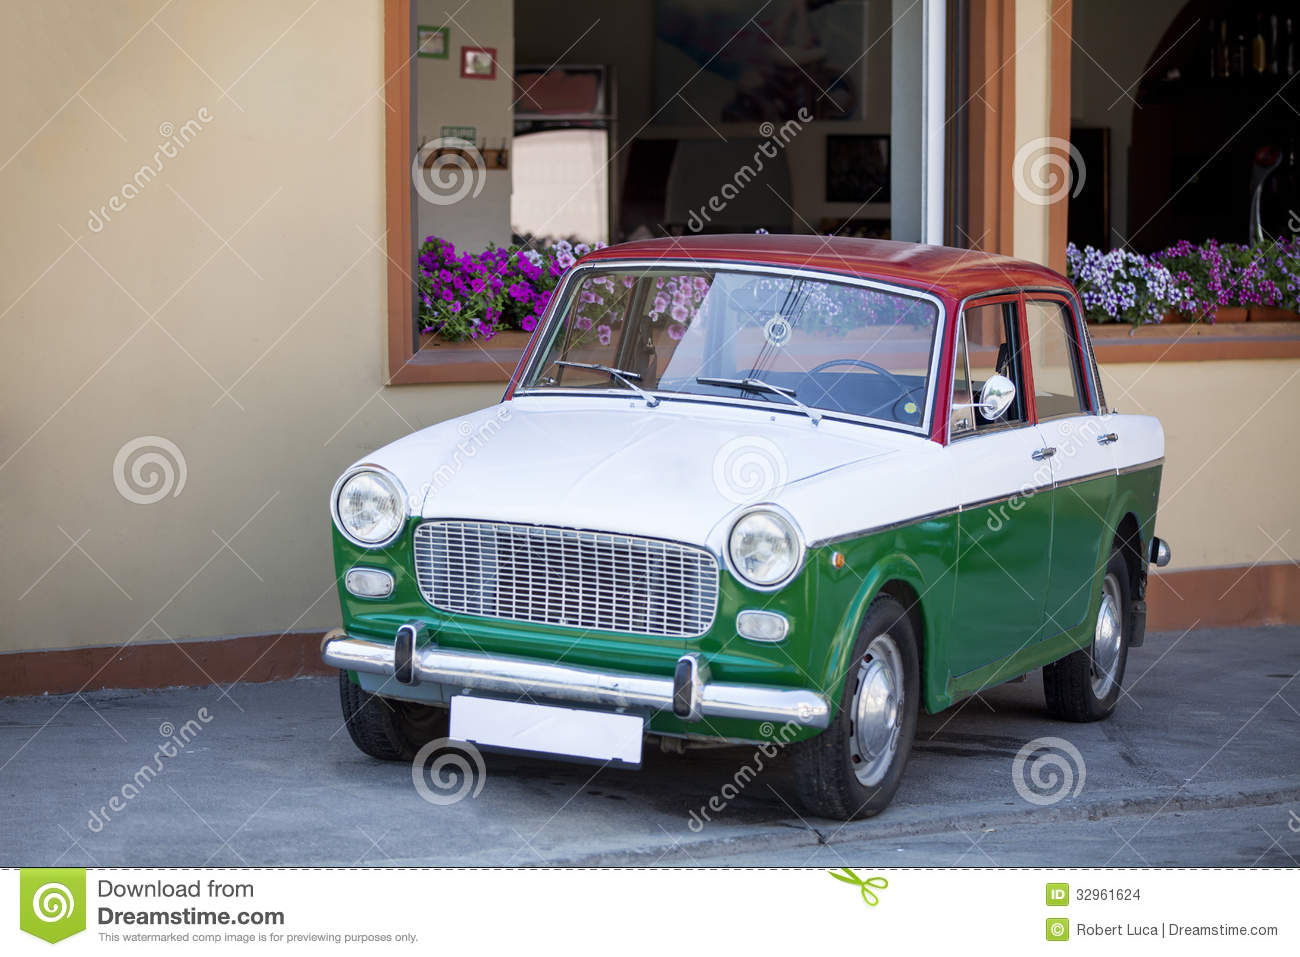 Carro italiano do vintage